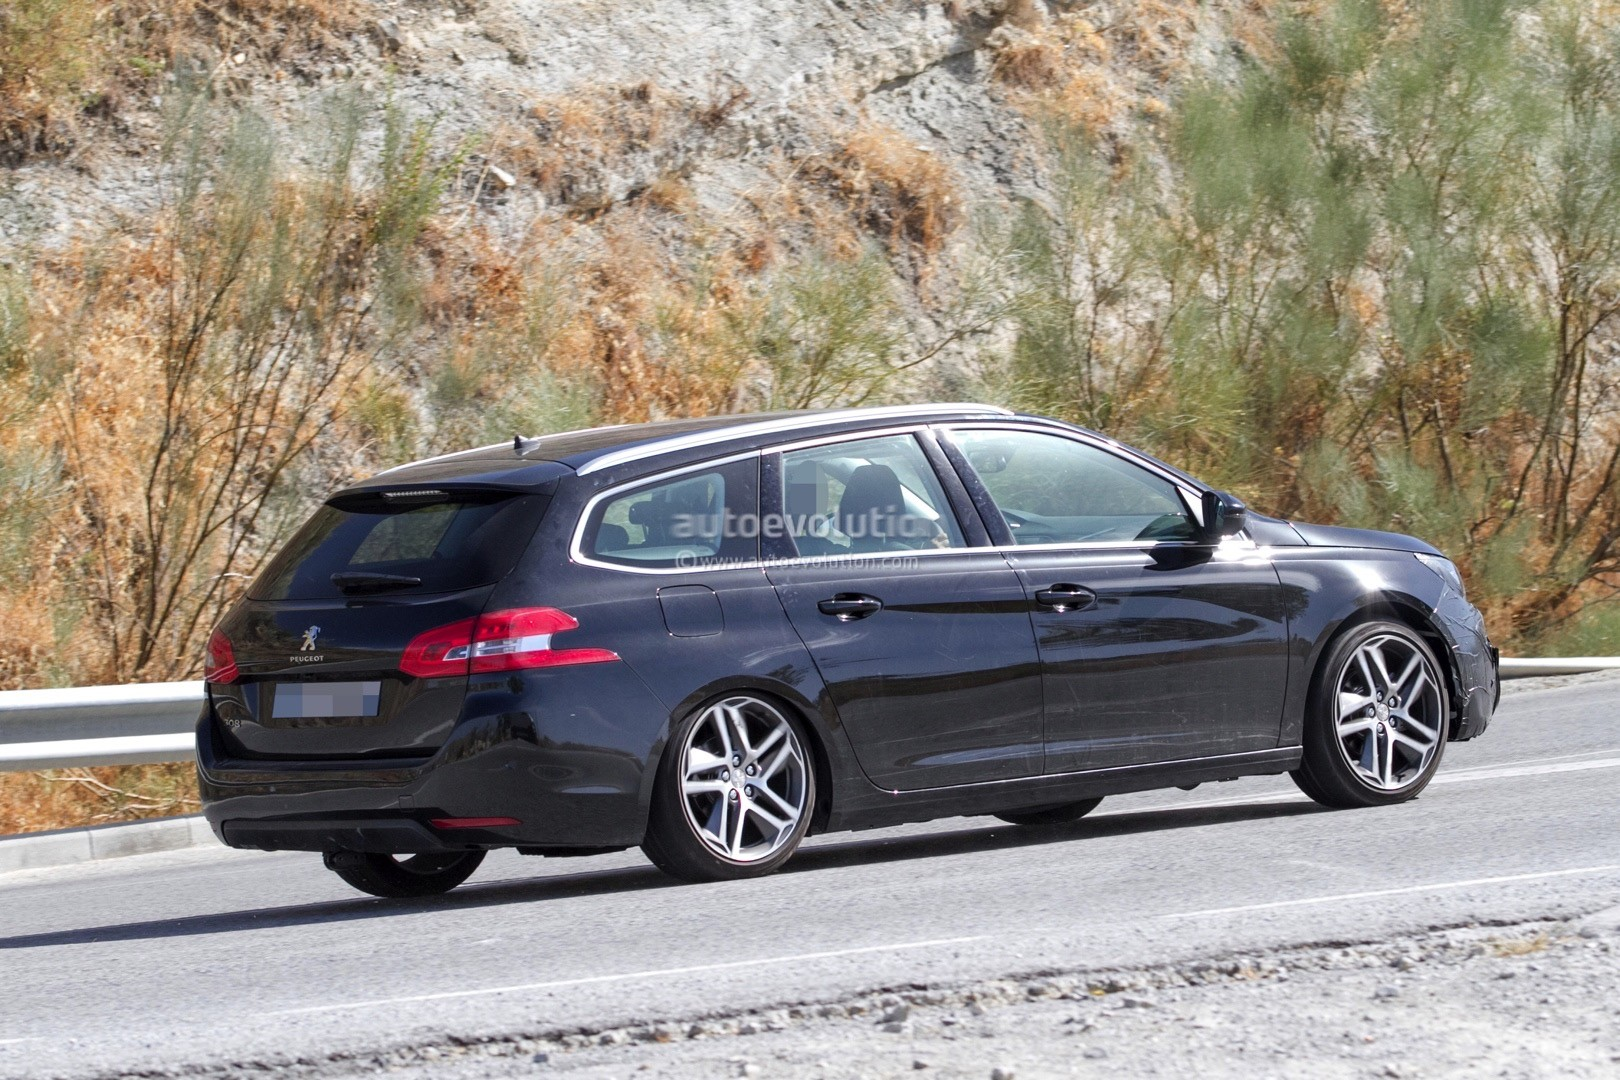 2017 - [Peugeot] 308 II Restylée - Page 11 Peugeot-prepares-to-facelift-308-model-lineup-for-2017_9